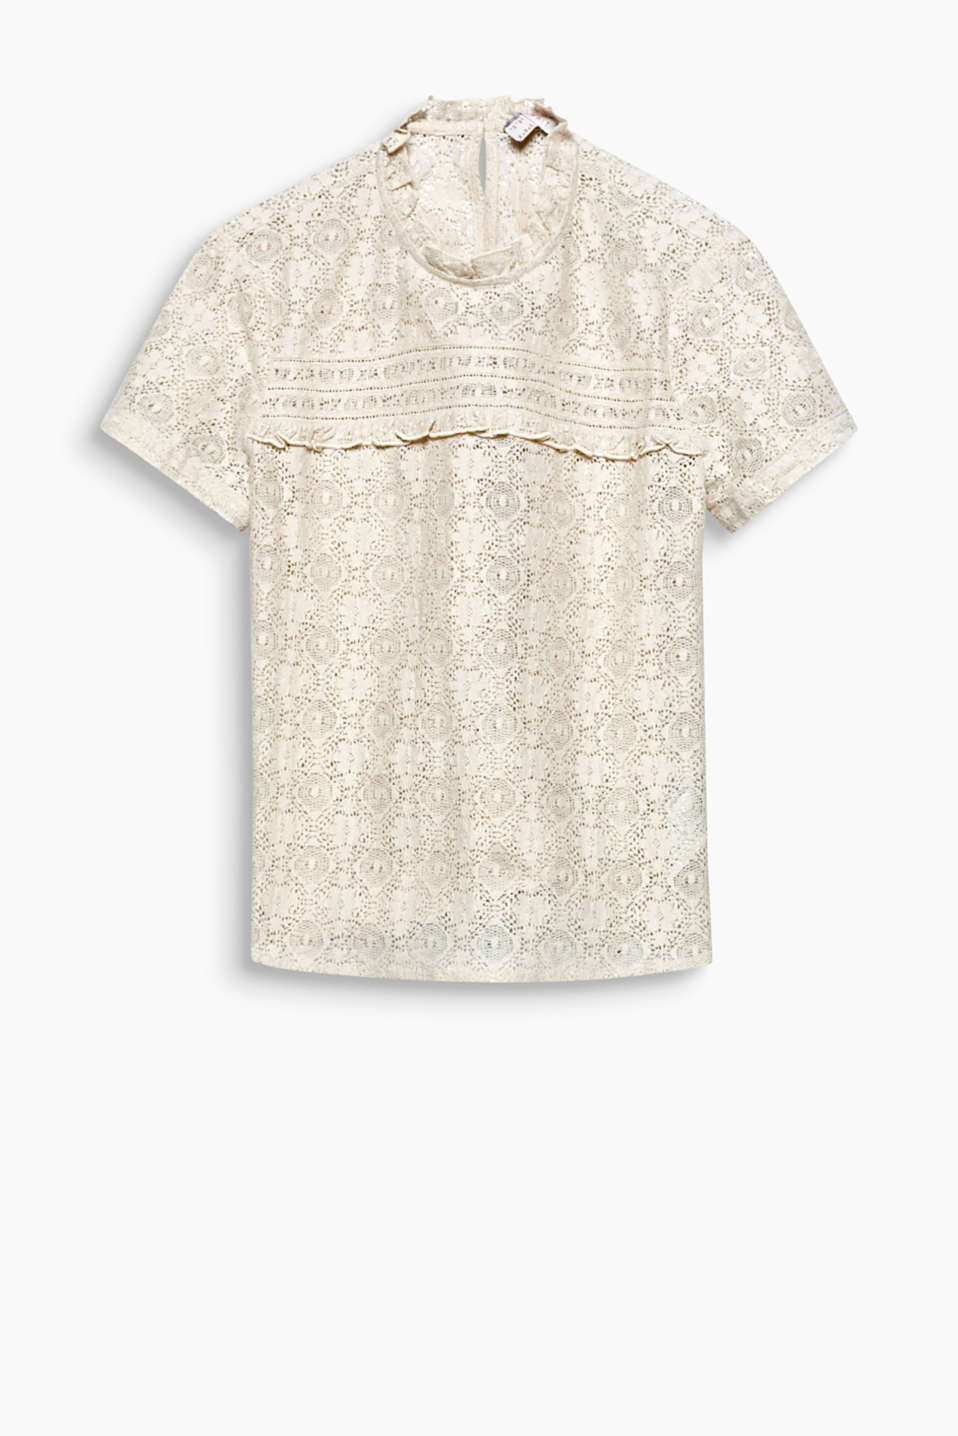 For a lacy romantic look: lightweight blended cotton blouse with frill details